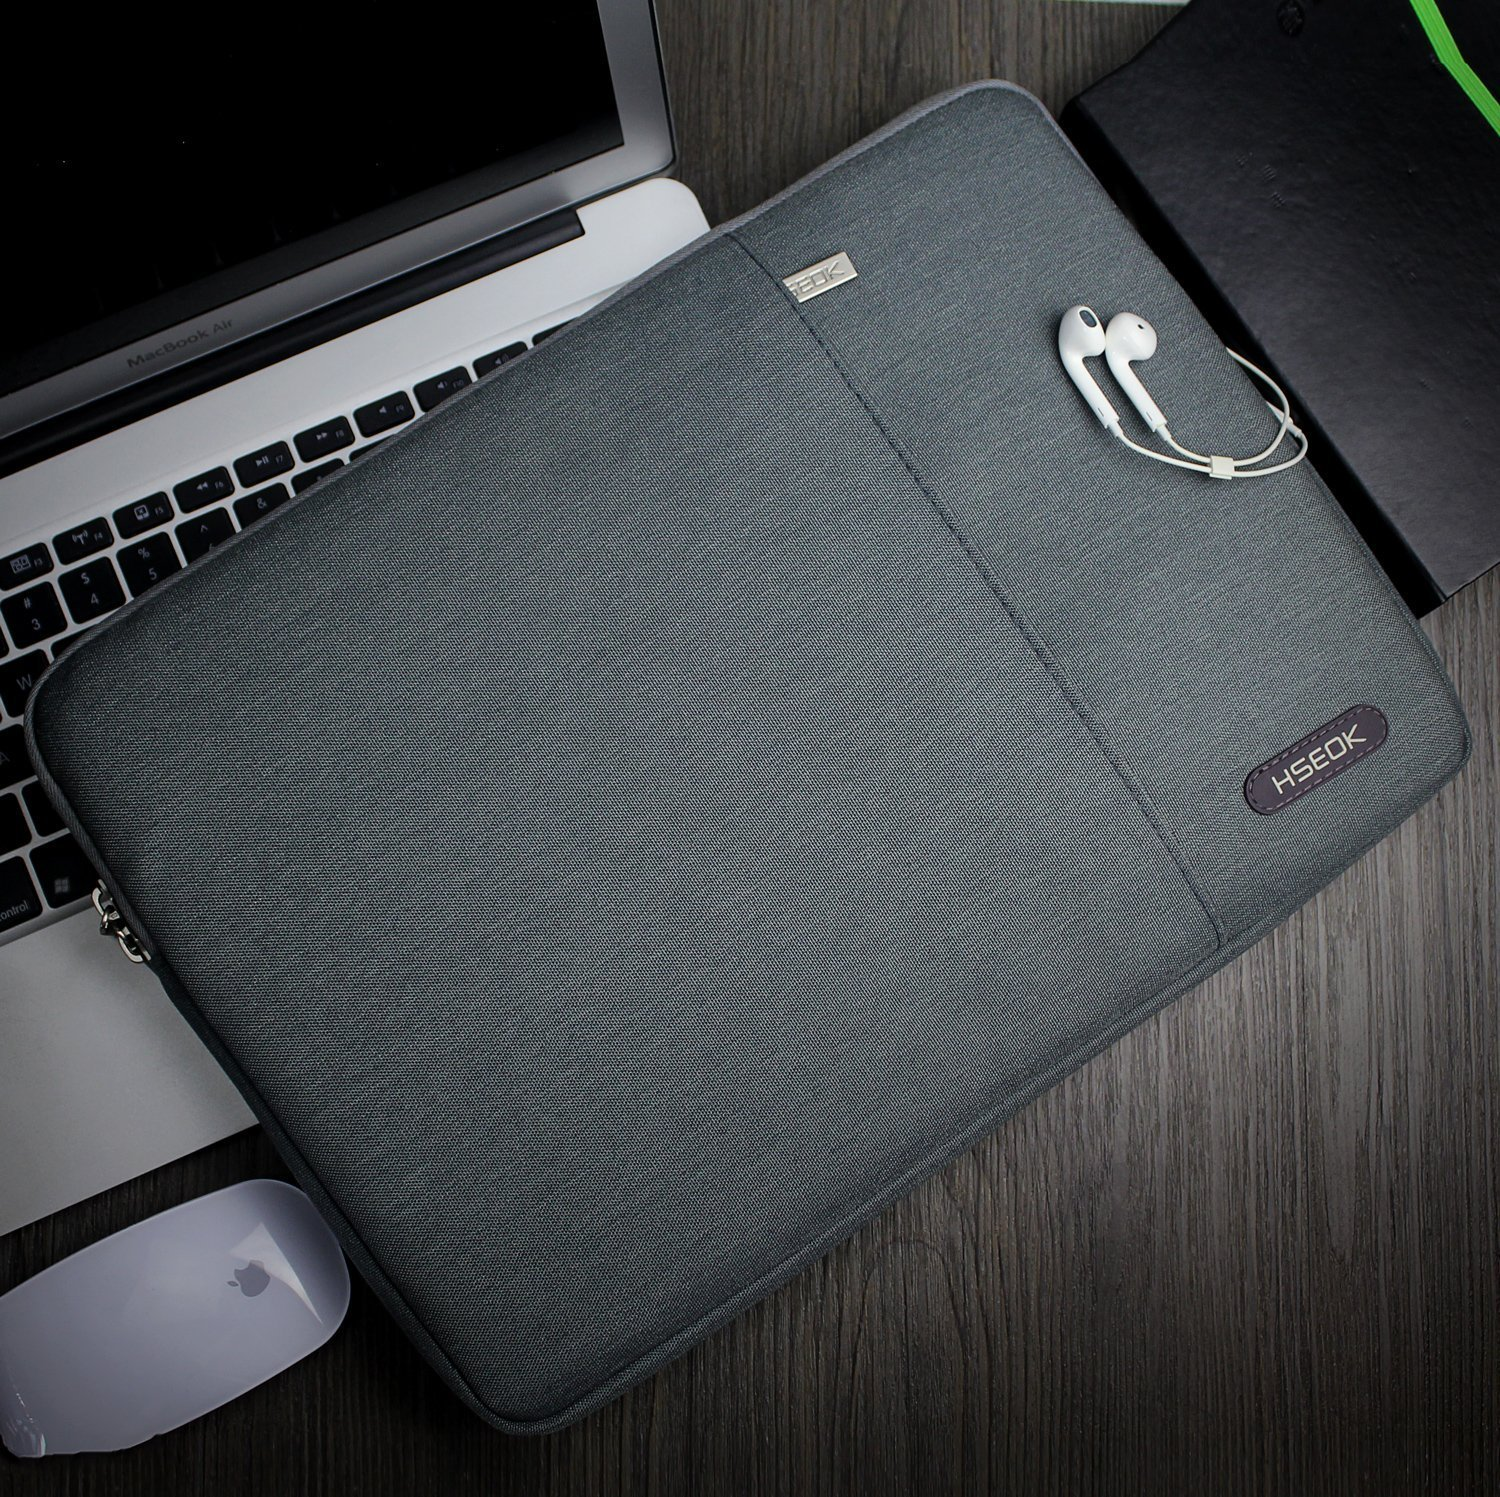 Surface Book2 Environmental-Friendly Spill-Resistant Laptop Sleeve for 11.6-Inch MacBook Air A1534 HSEOK 11.6-12.9 Inch Laptop Sleeve Case Black iPad Pro 12.9-Inch ThinkPad 11.6-Inch